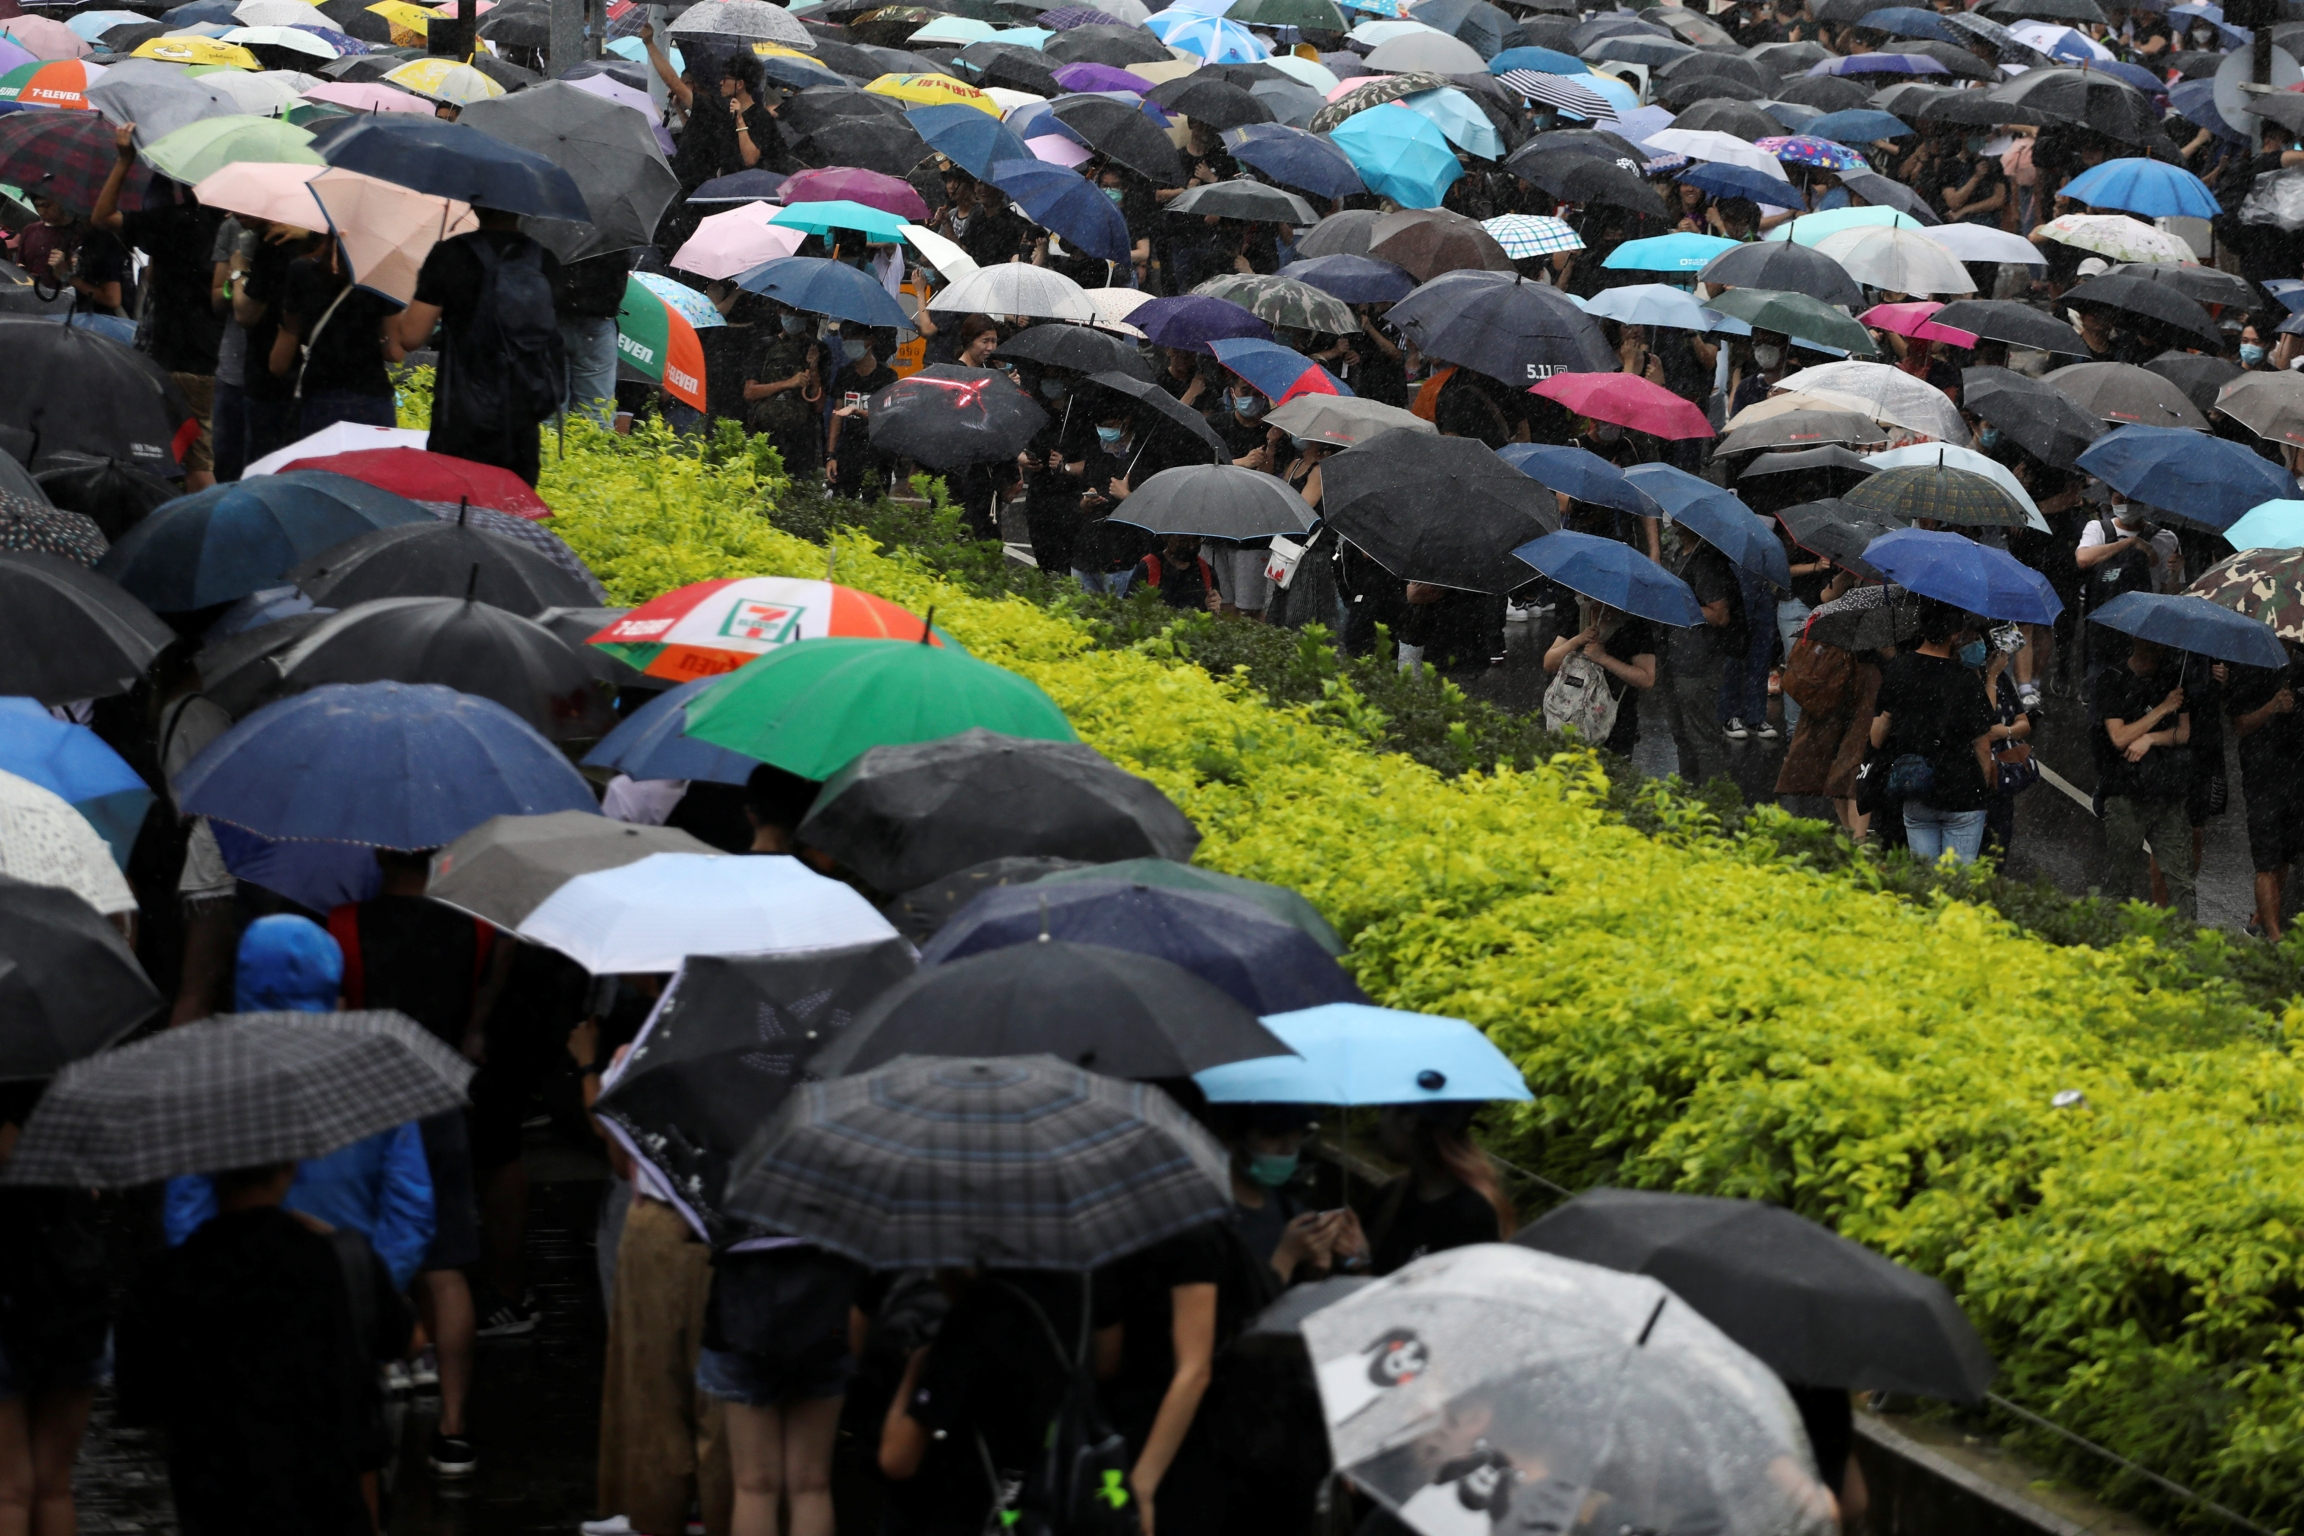 Hong Kong protesters carry umbrellas – a symbolic reminder of the 2014 Umbrella Movement, June 17, 2019.